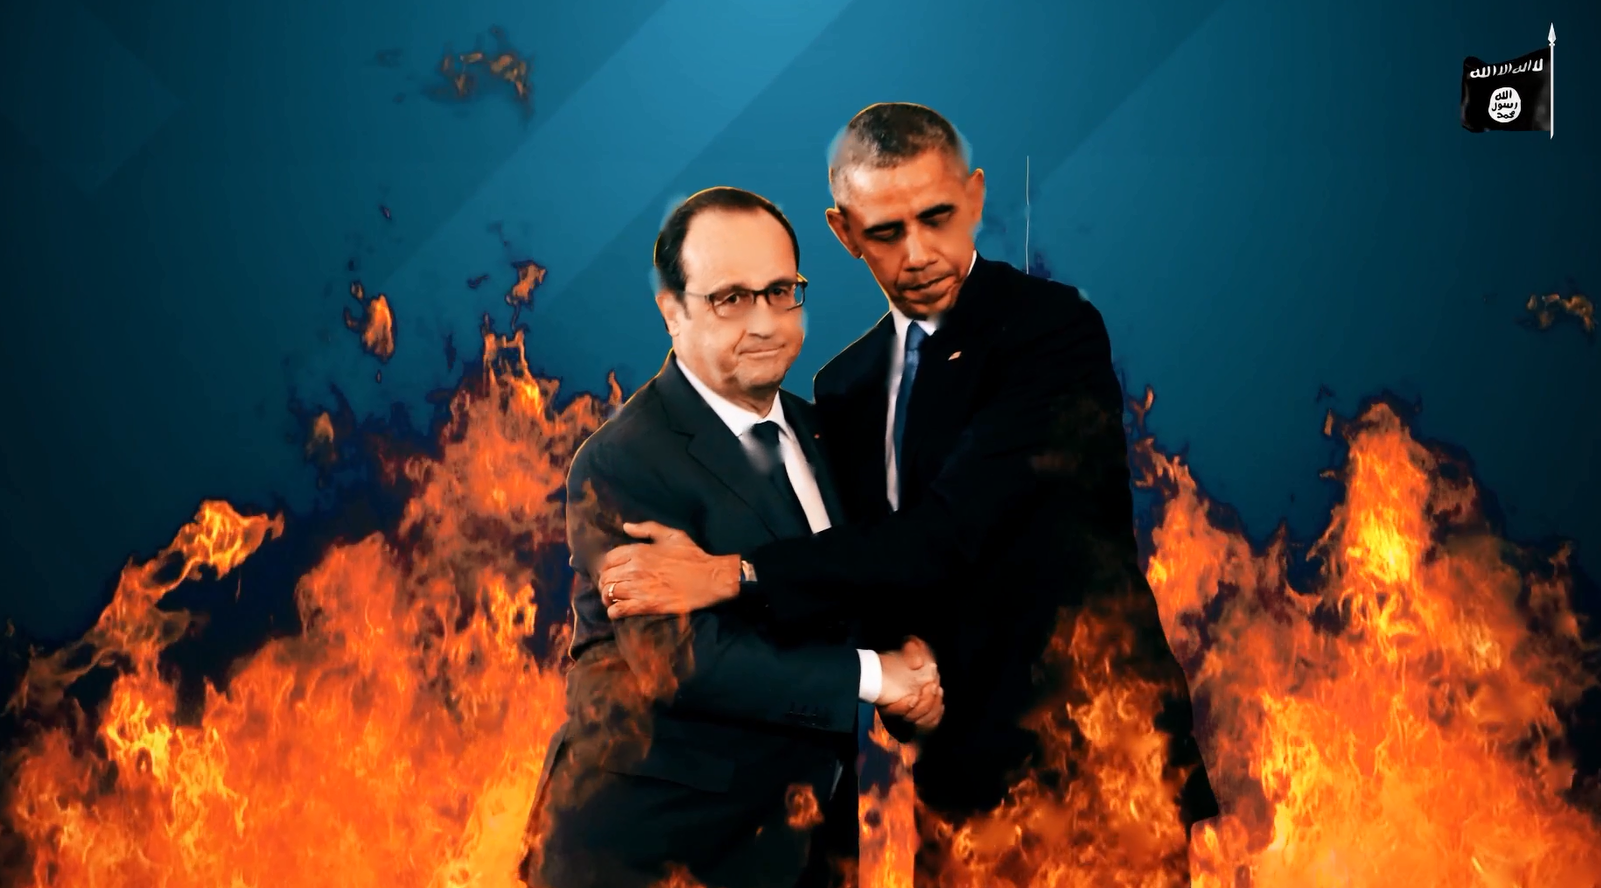 ISIS VIDEO OBAMA HOLLAND